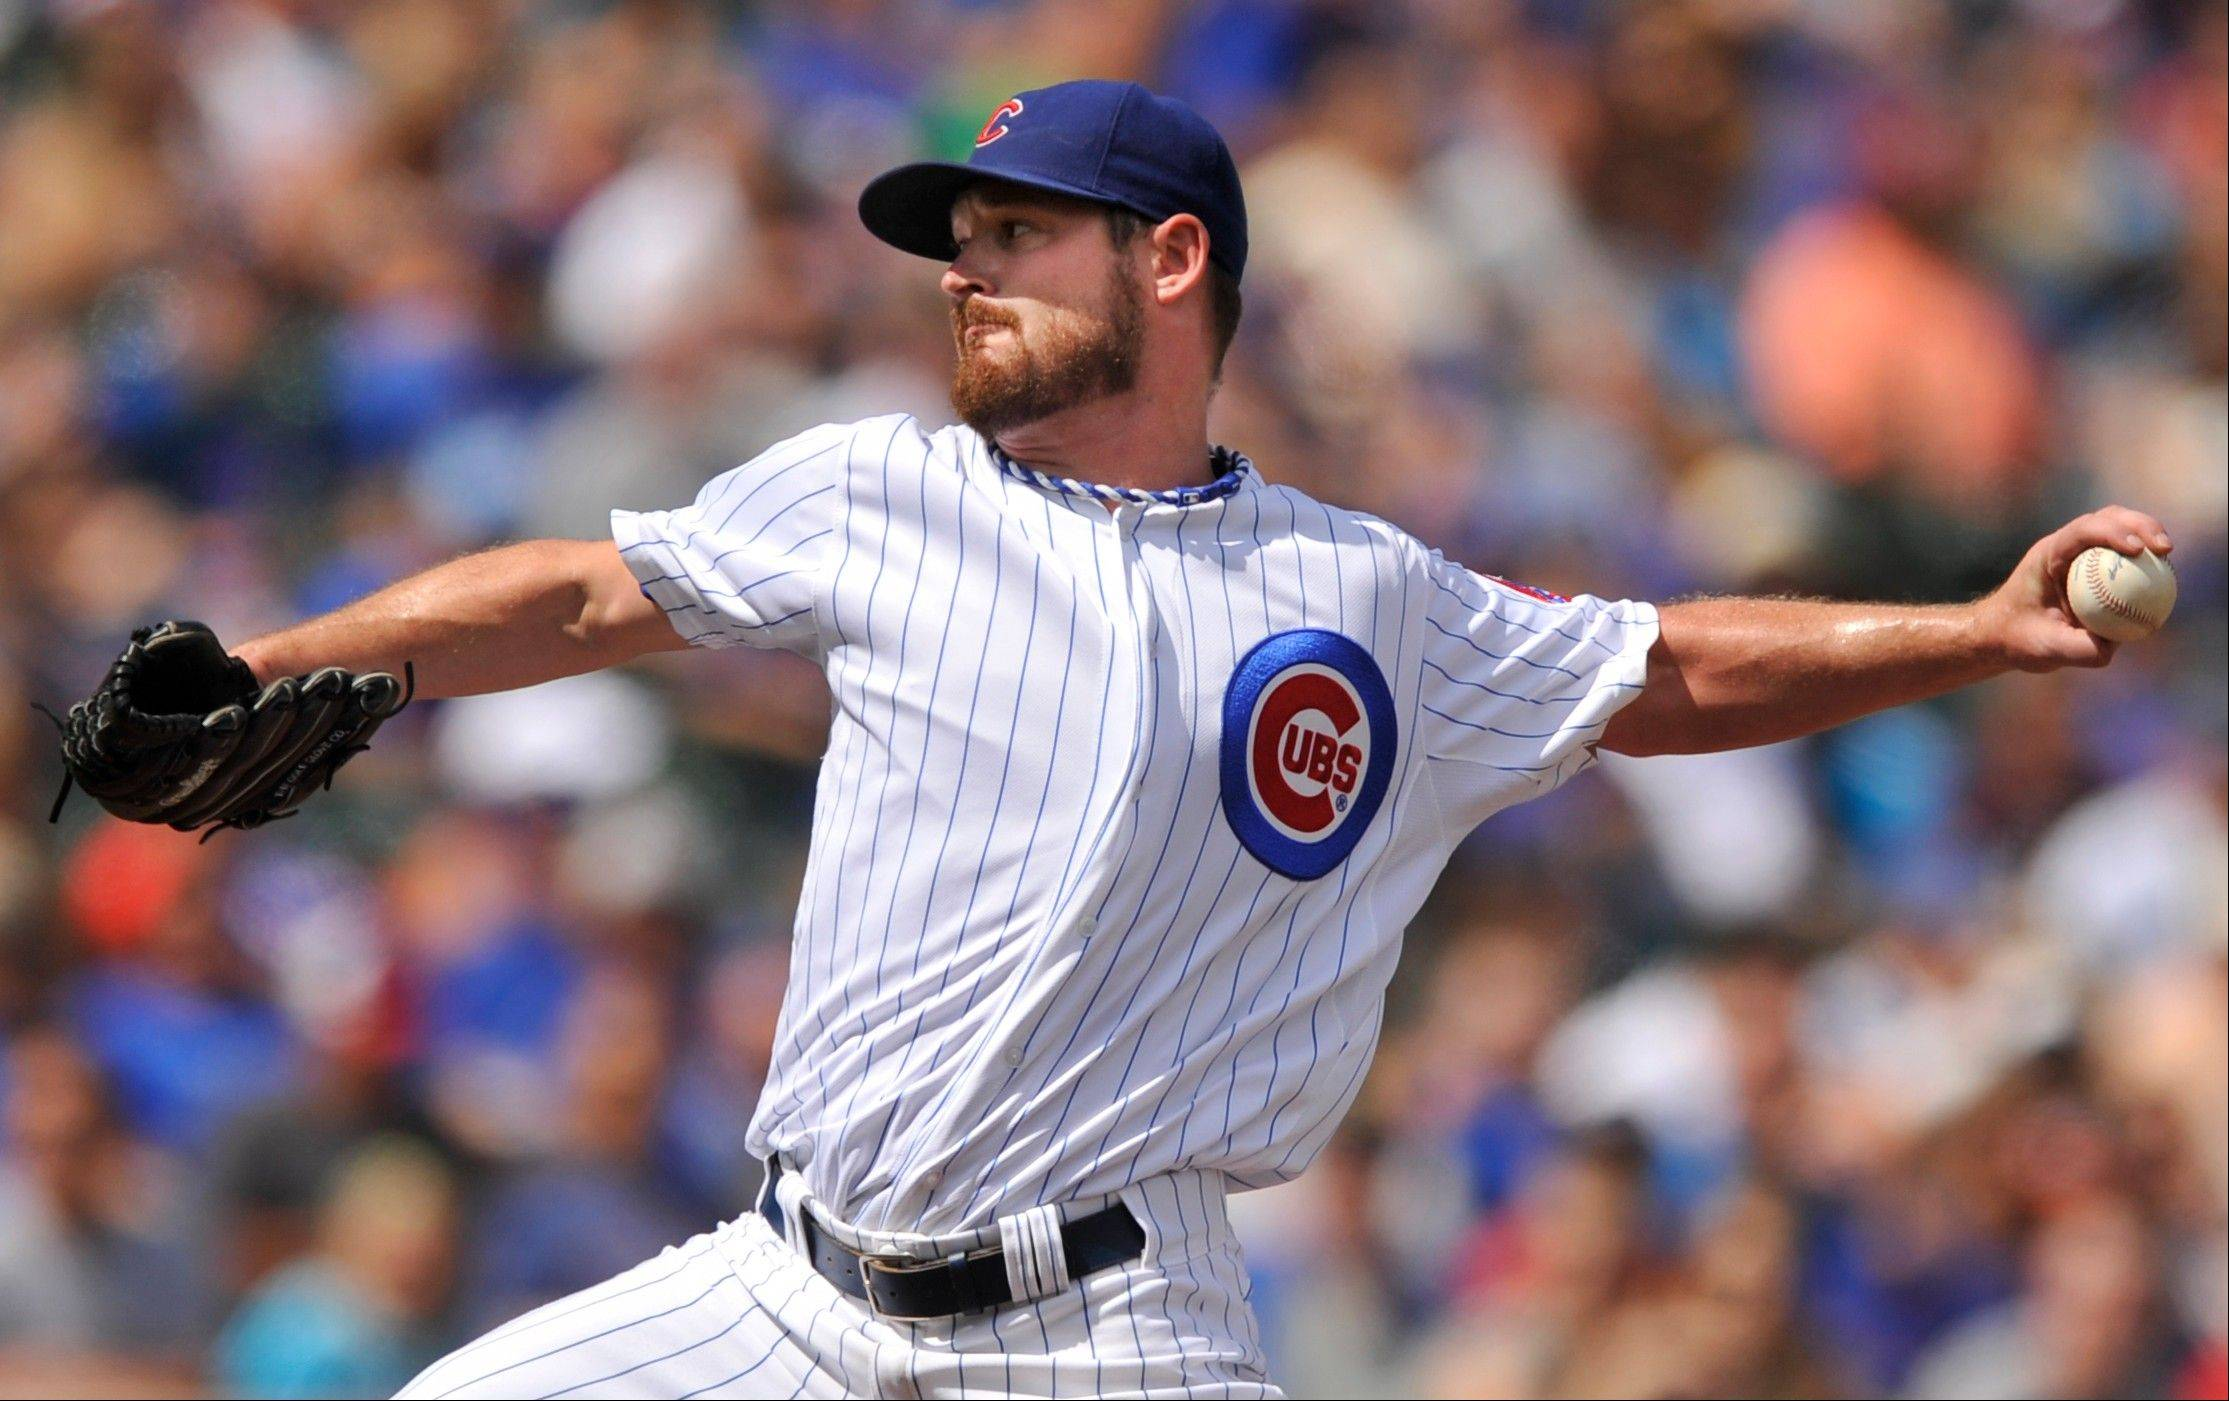 Cubs starter Travis Wood settled down after giving up 4 runs in the first two innings Monday at Wrigley Field. Still, he took the loss to fall to 8-11.